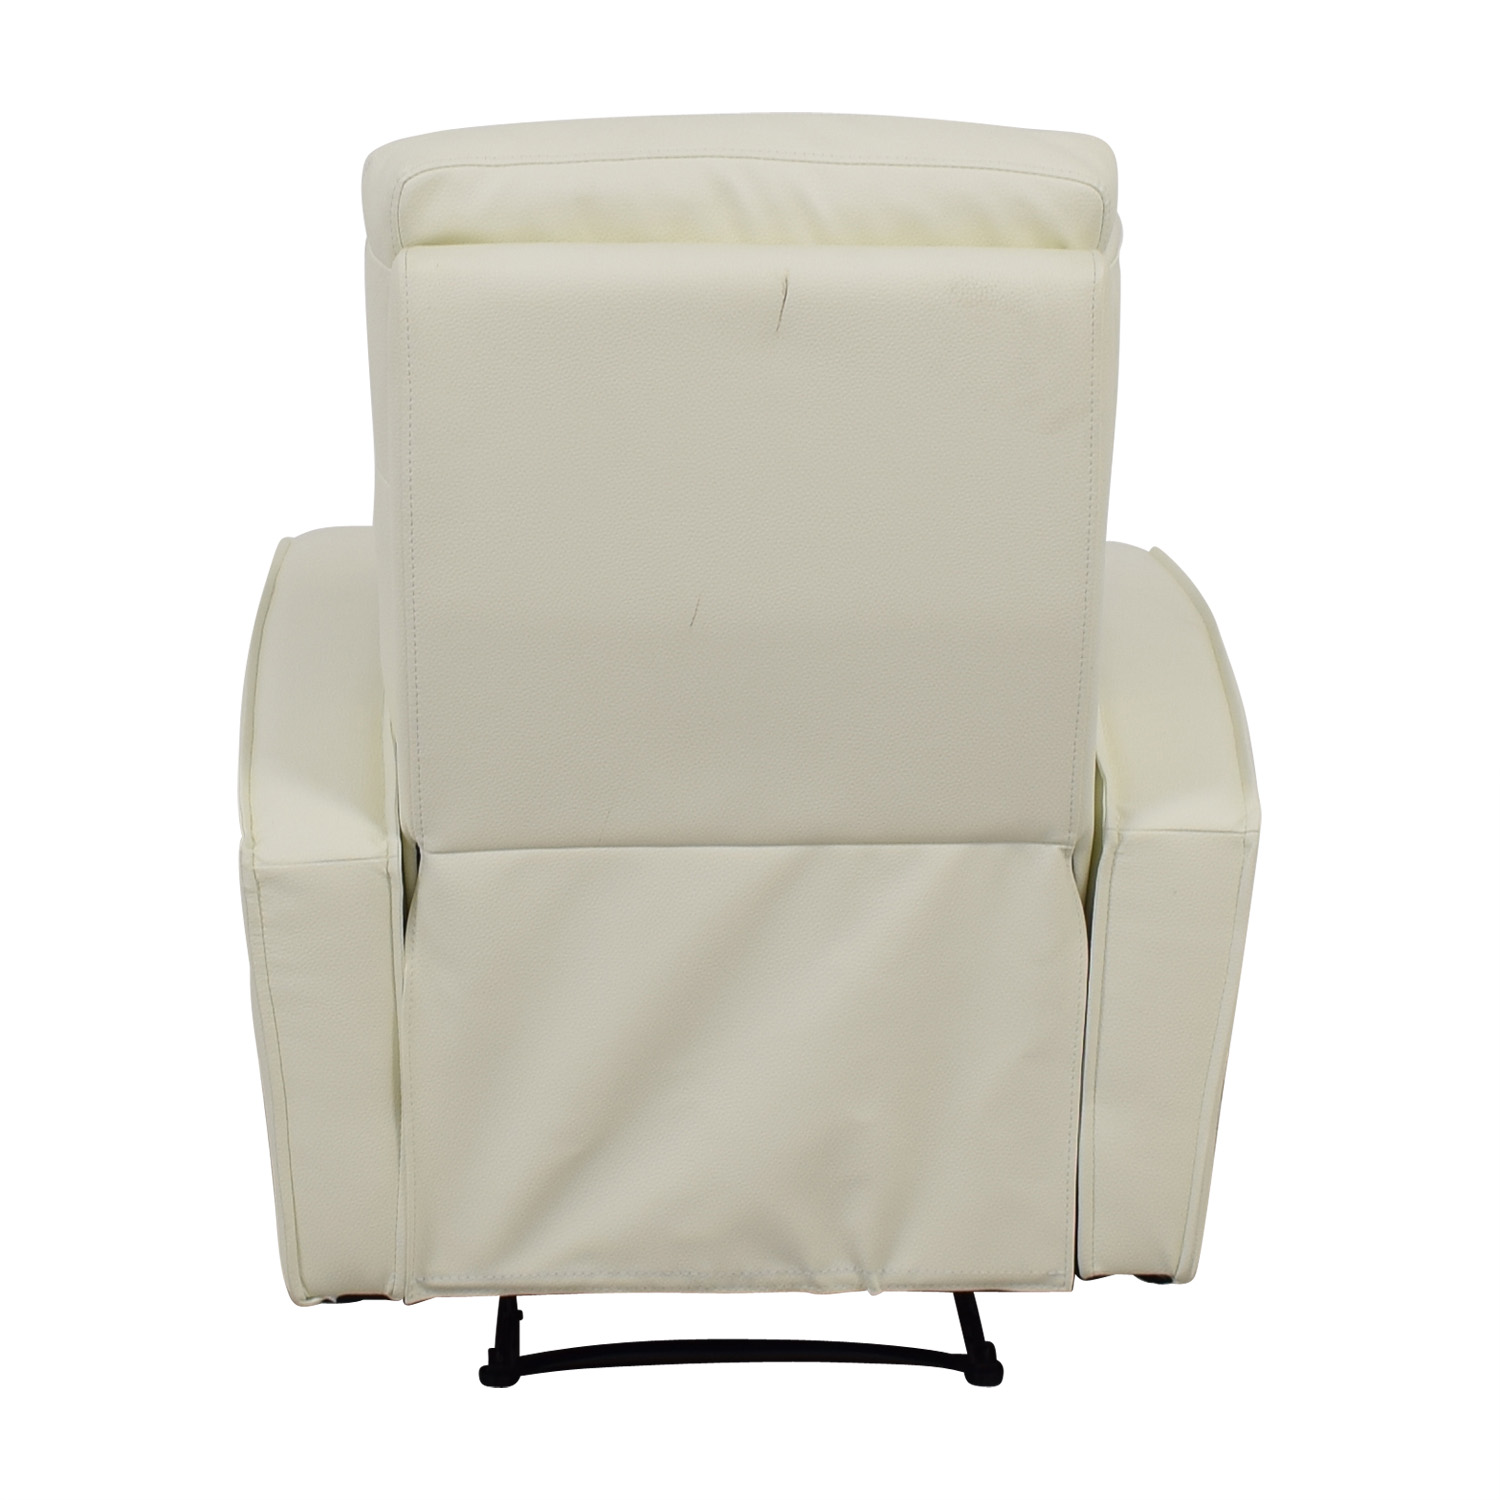 Modani Modani Helmi White Leather Lounge Recliner for sale